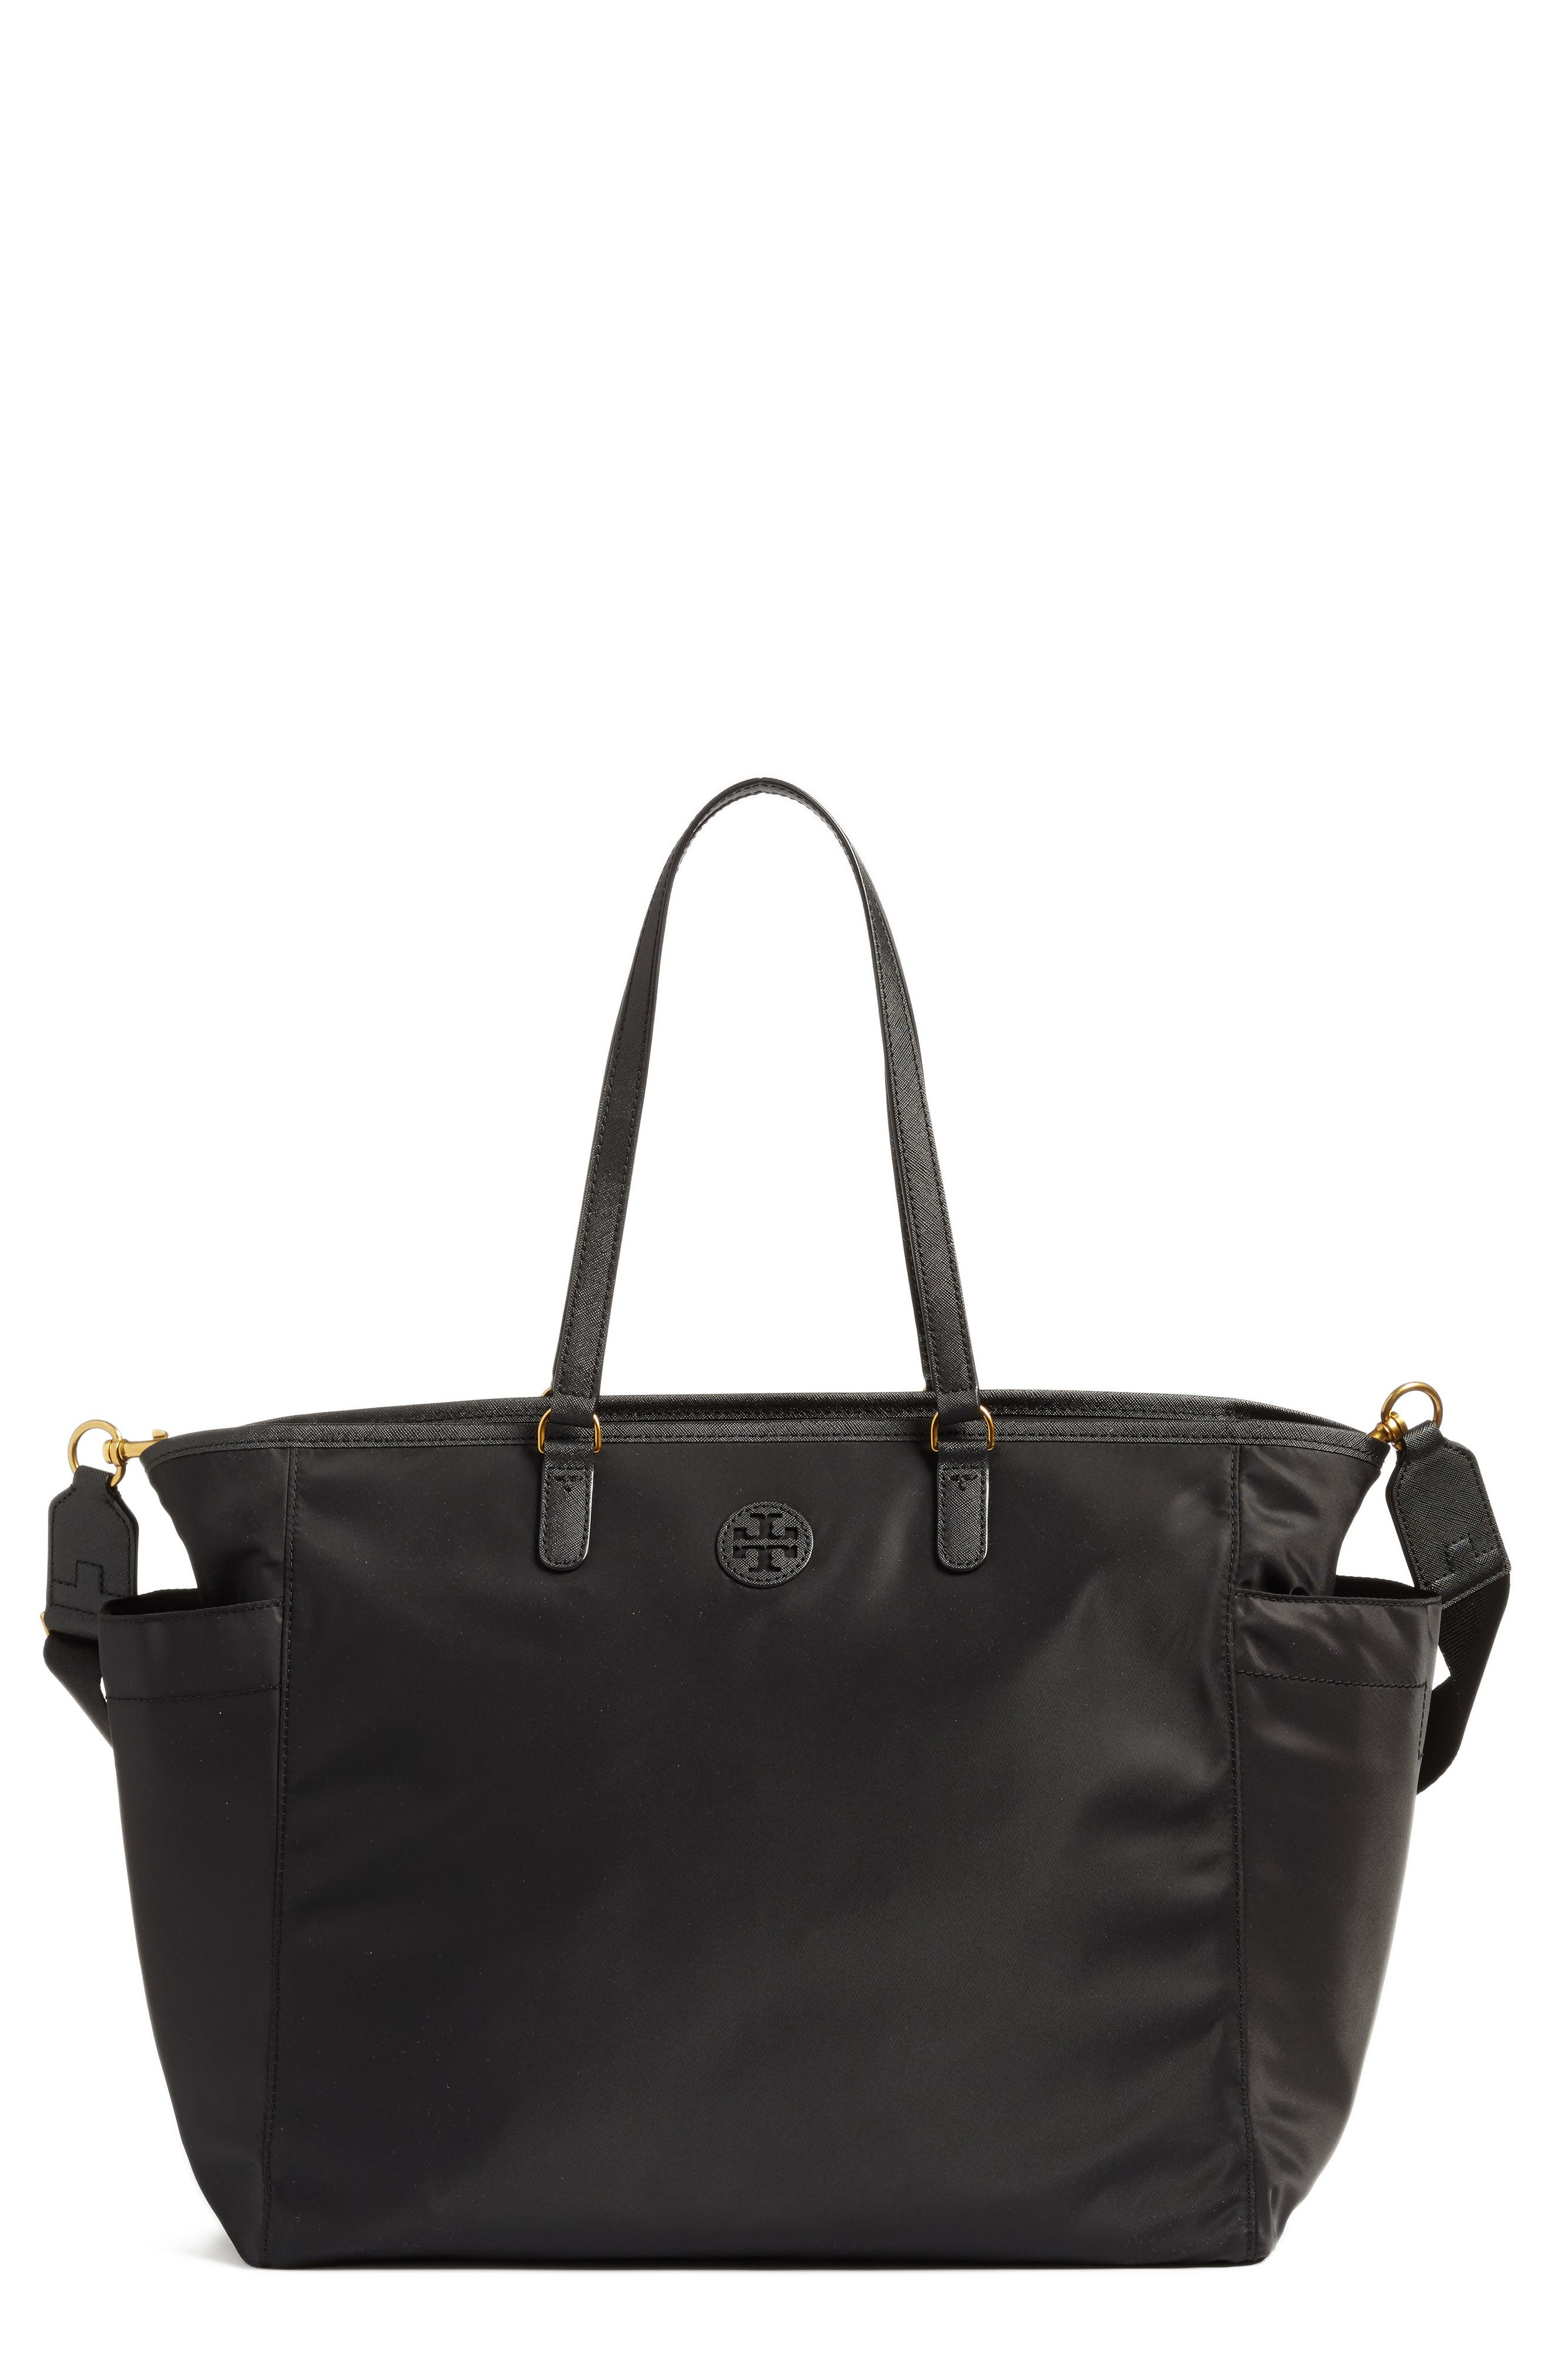 Alternate Image 1 Selected - Tory Burch Scout Nylon Diaper Tote